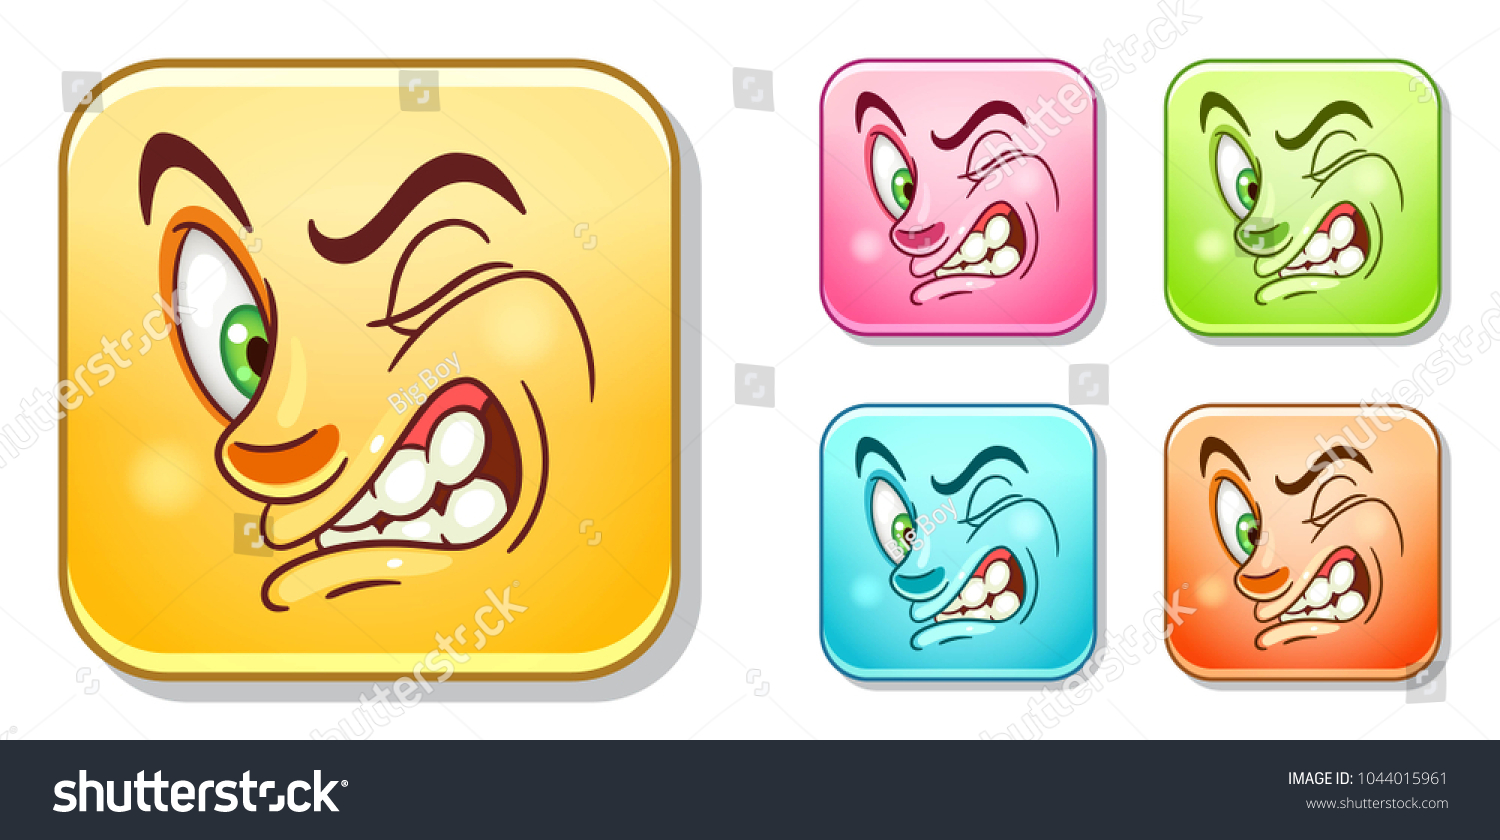 Dislike and disgusting emoji face emoticons collection colorful smiley set avatar symbol